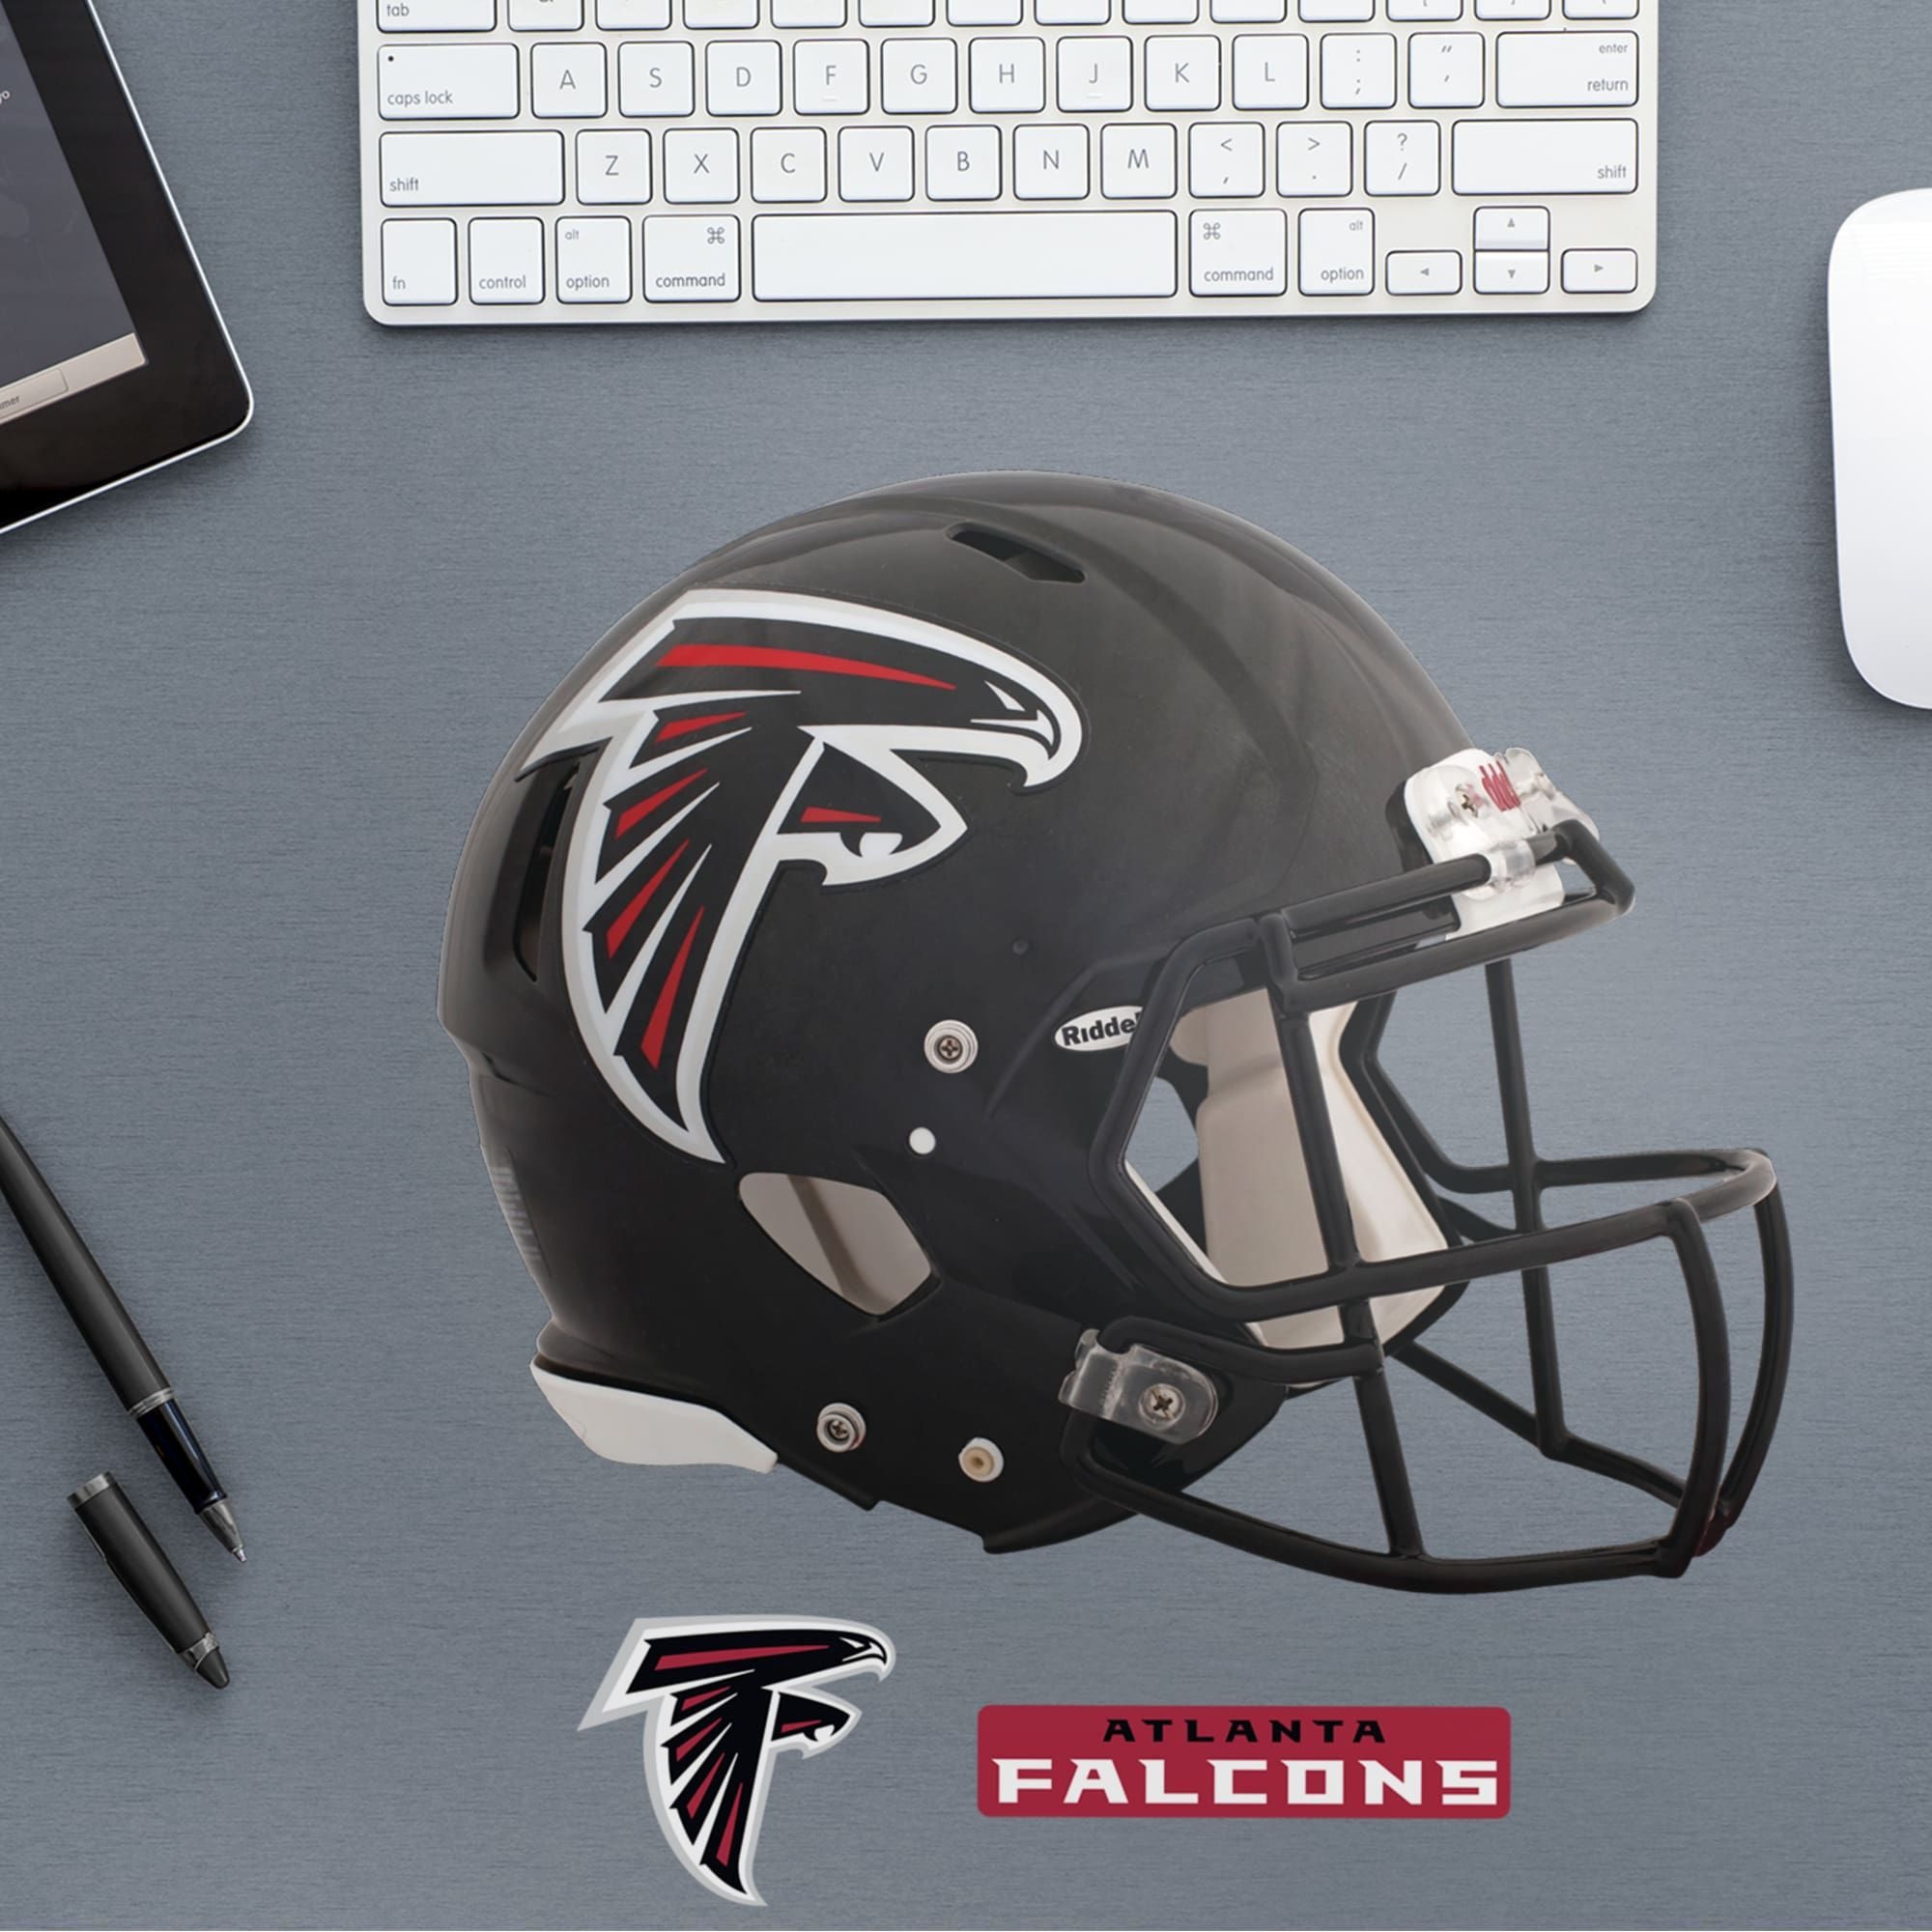 Atlanta Falcons Helmet Huge Officially Licensed Nfl Removable Wall Decal In 2020 Removable Wall Decals Atlanta Falcons Removable Wall